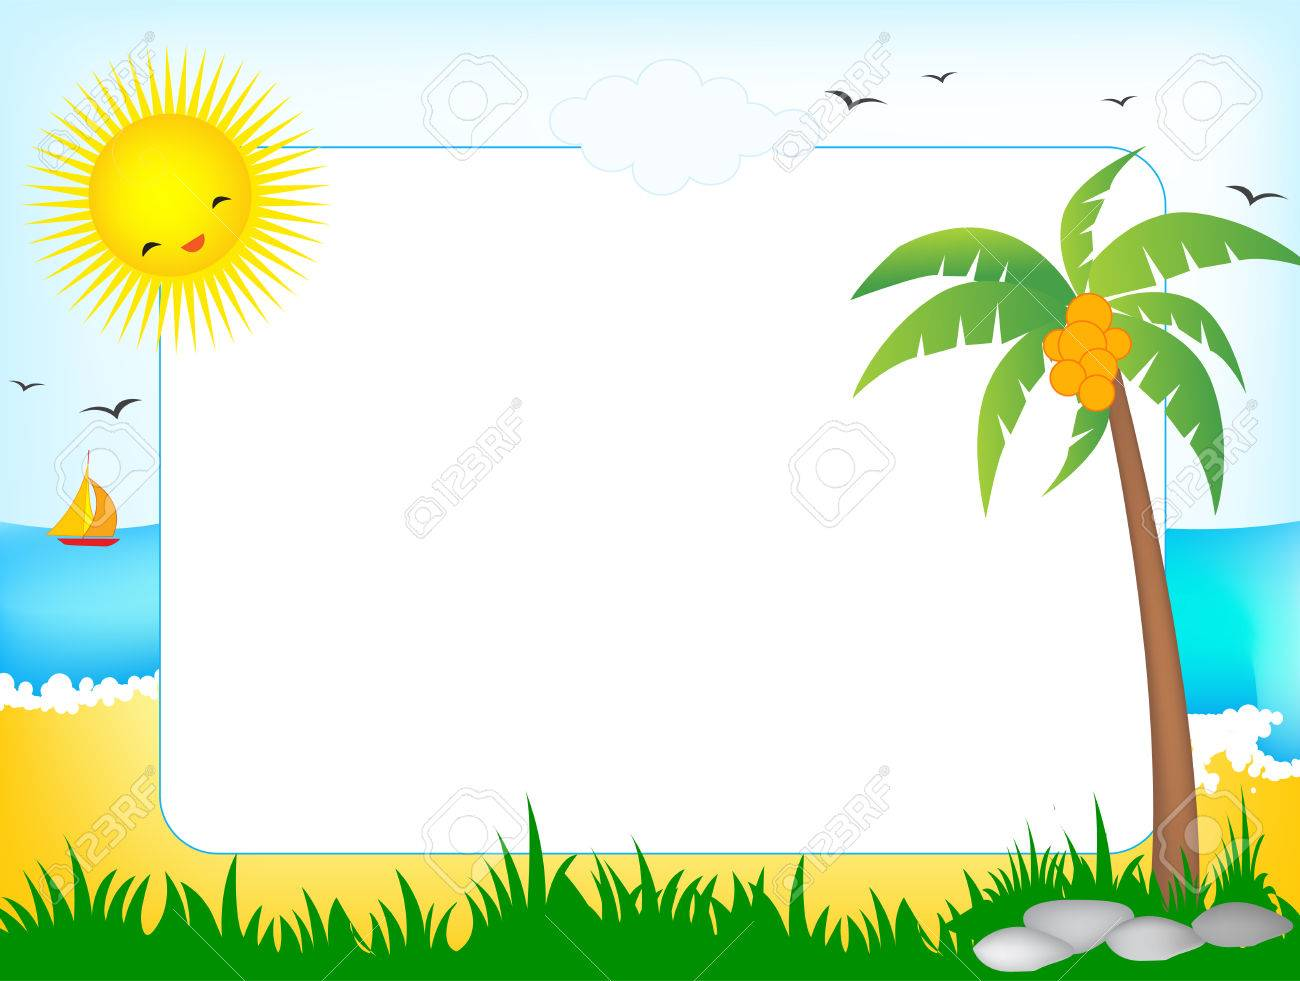 Summer Frame / Border Royalty Free Cliparts, Vectors, And Stock ...